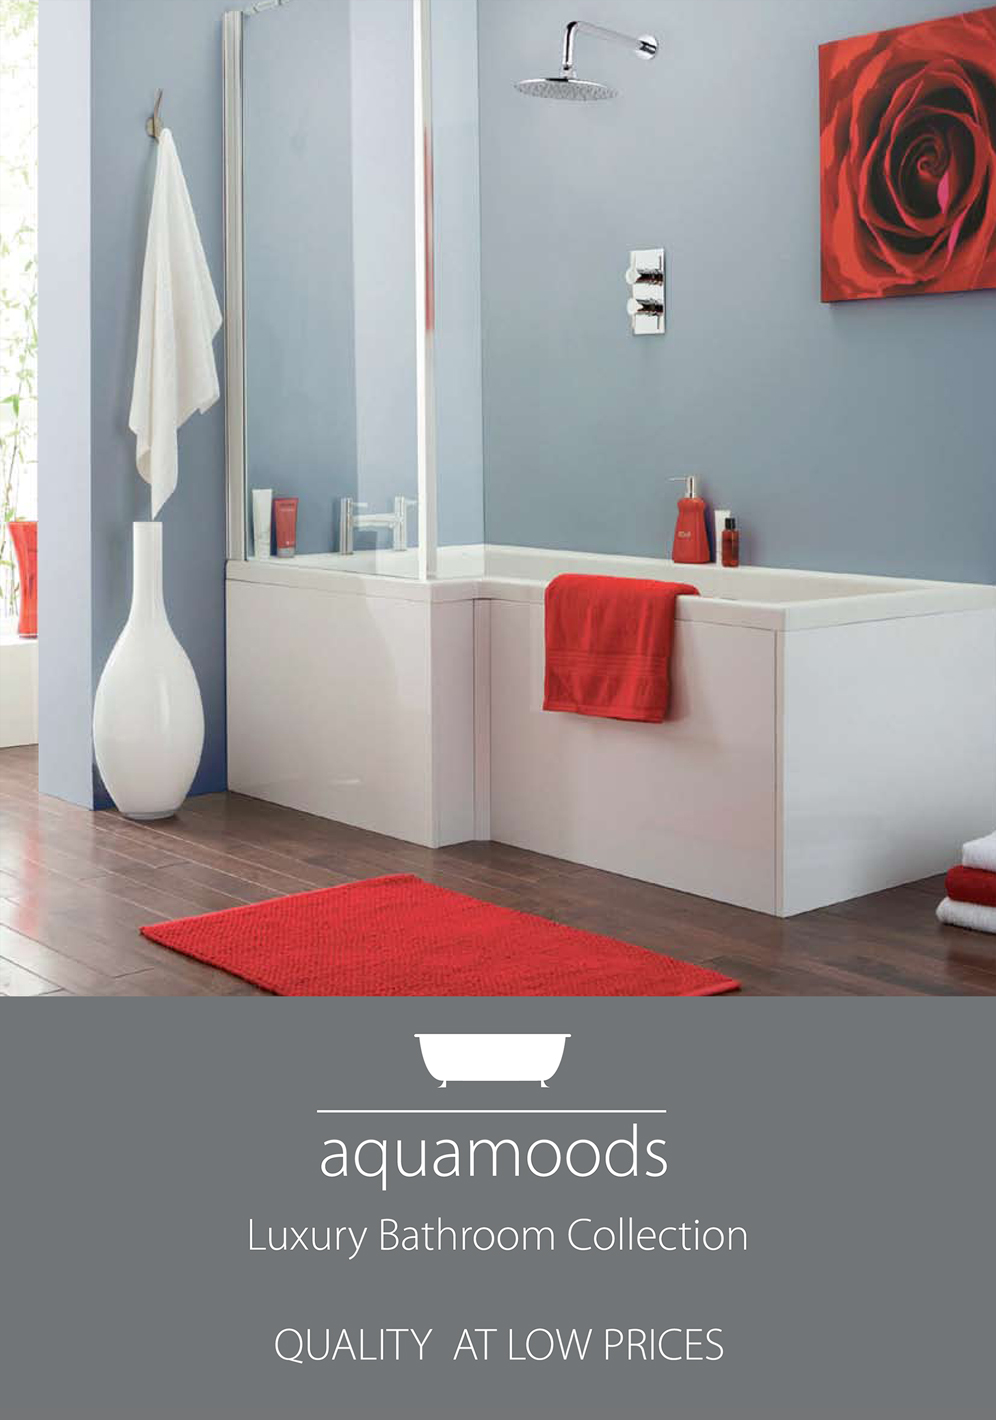 Aquamoods Catalogue